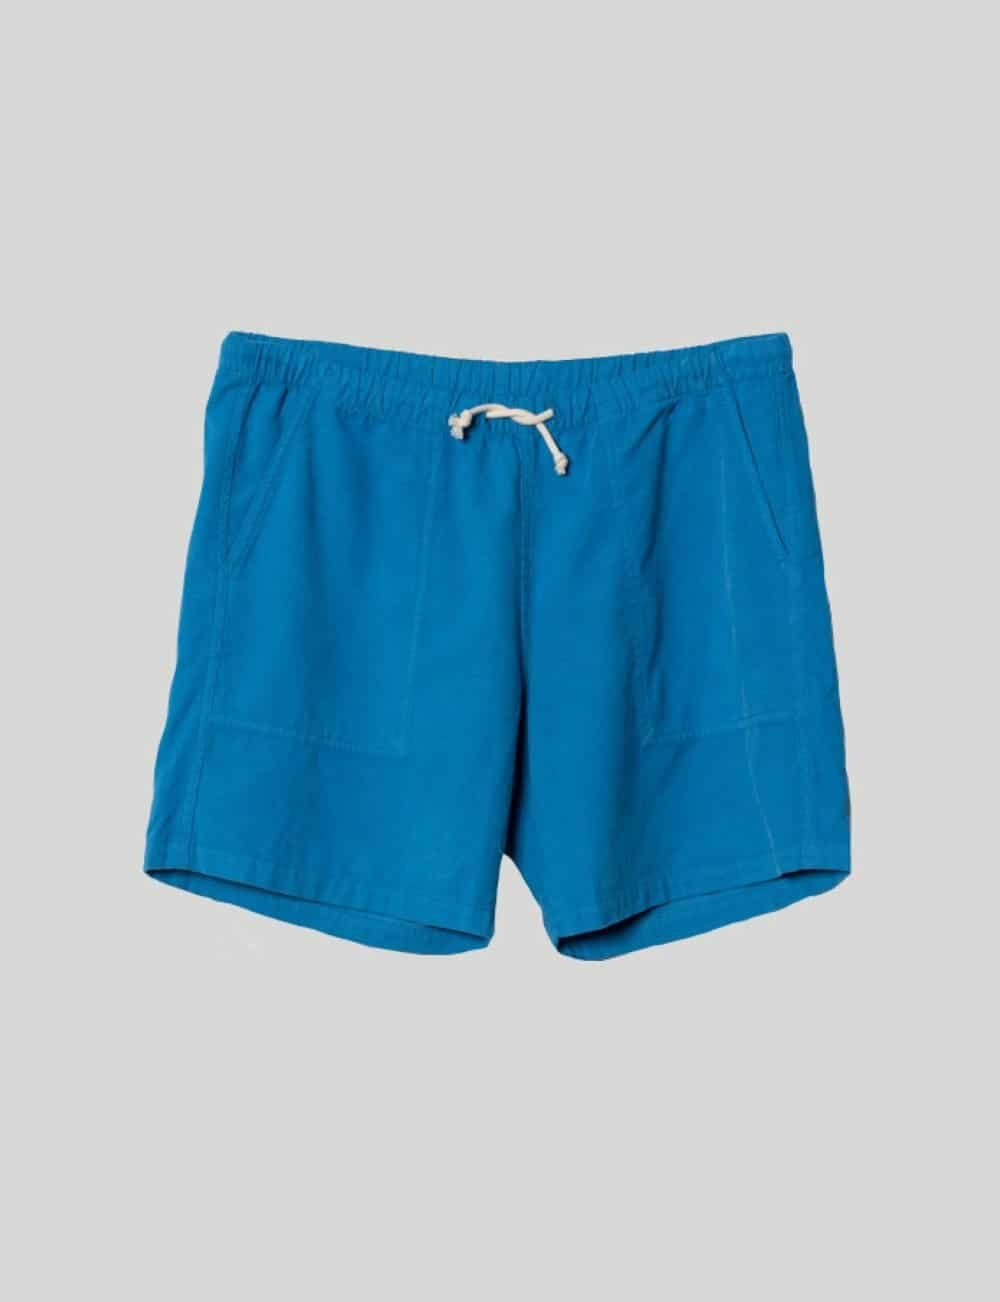 Castart - La Paz - Formigal Shorts - French Blue